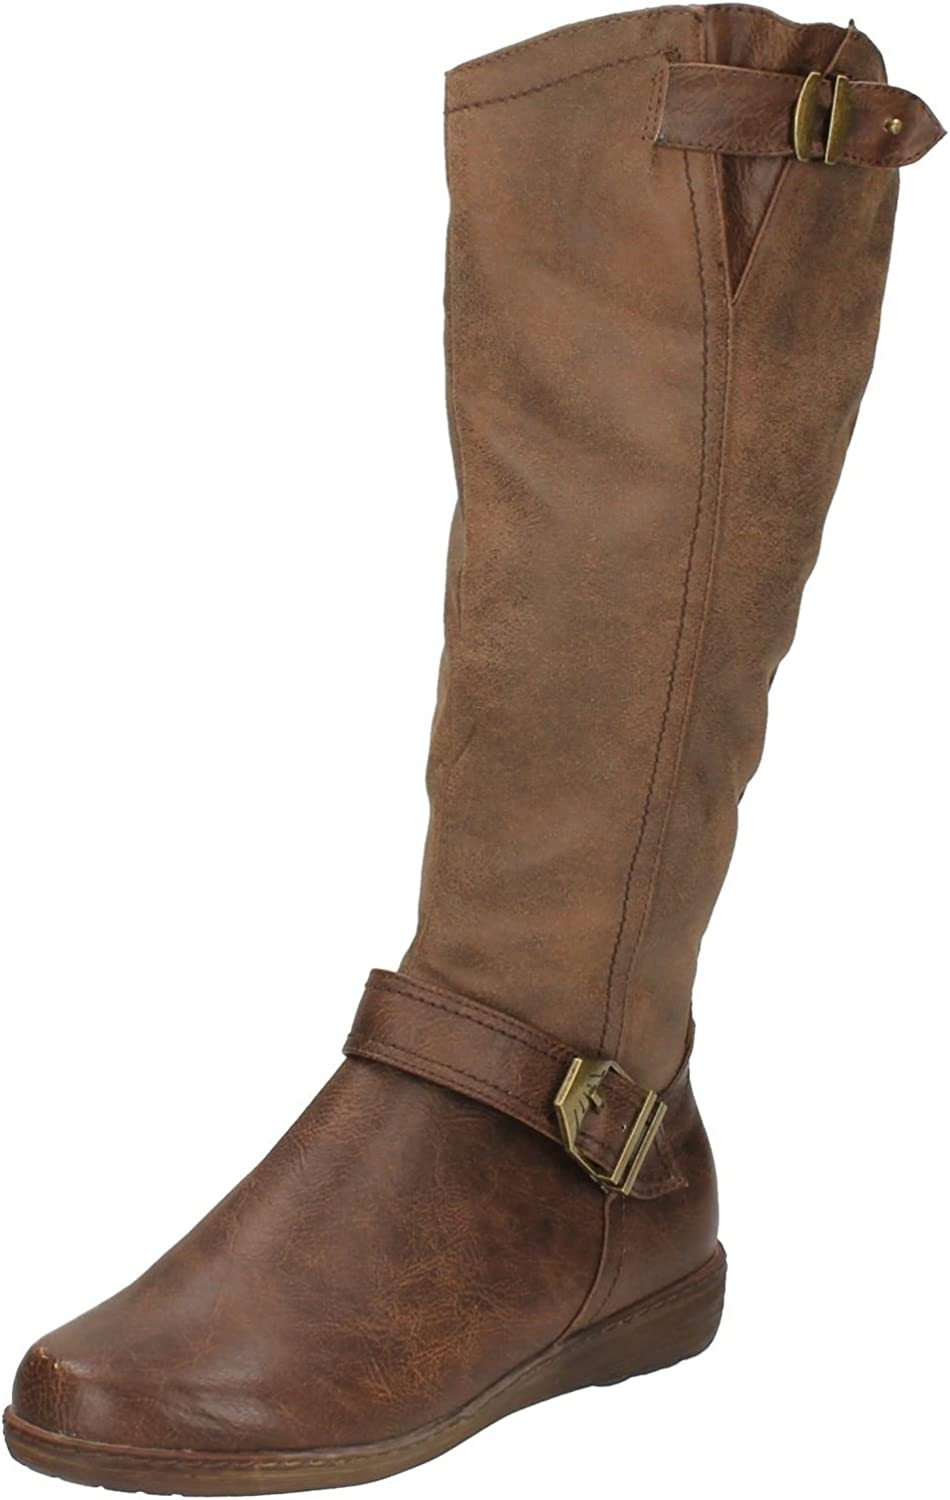 Ladies Spot On Casual Long Boots F50330